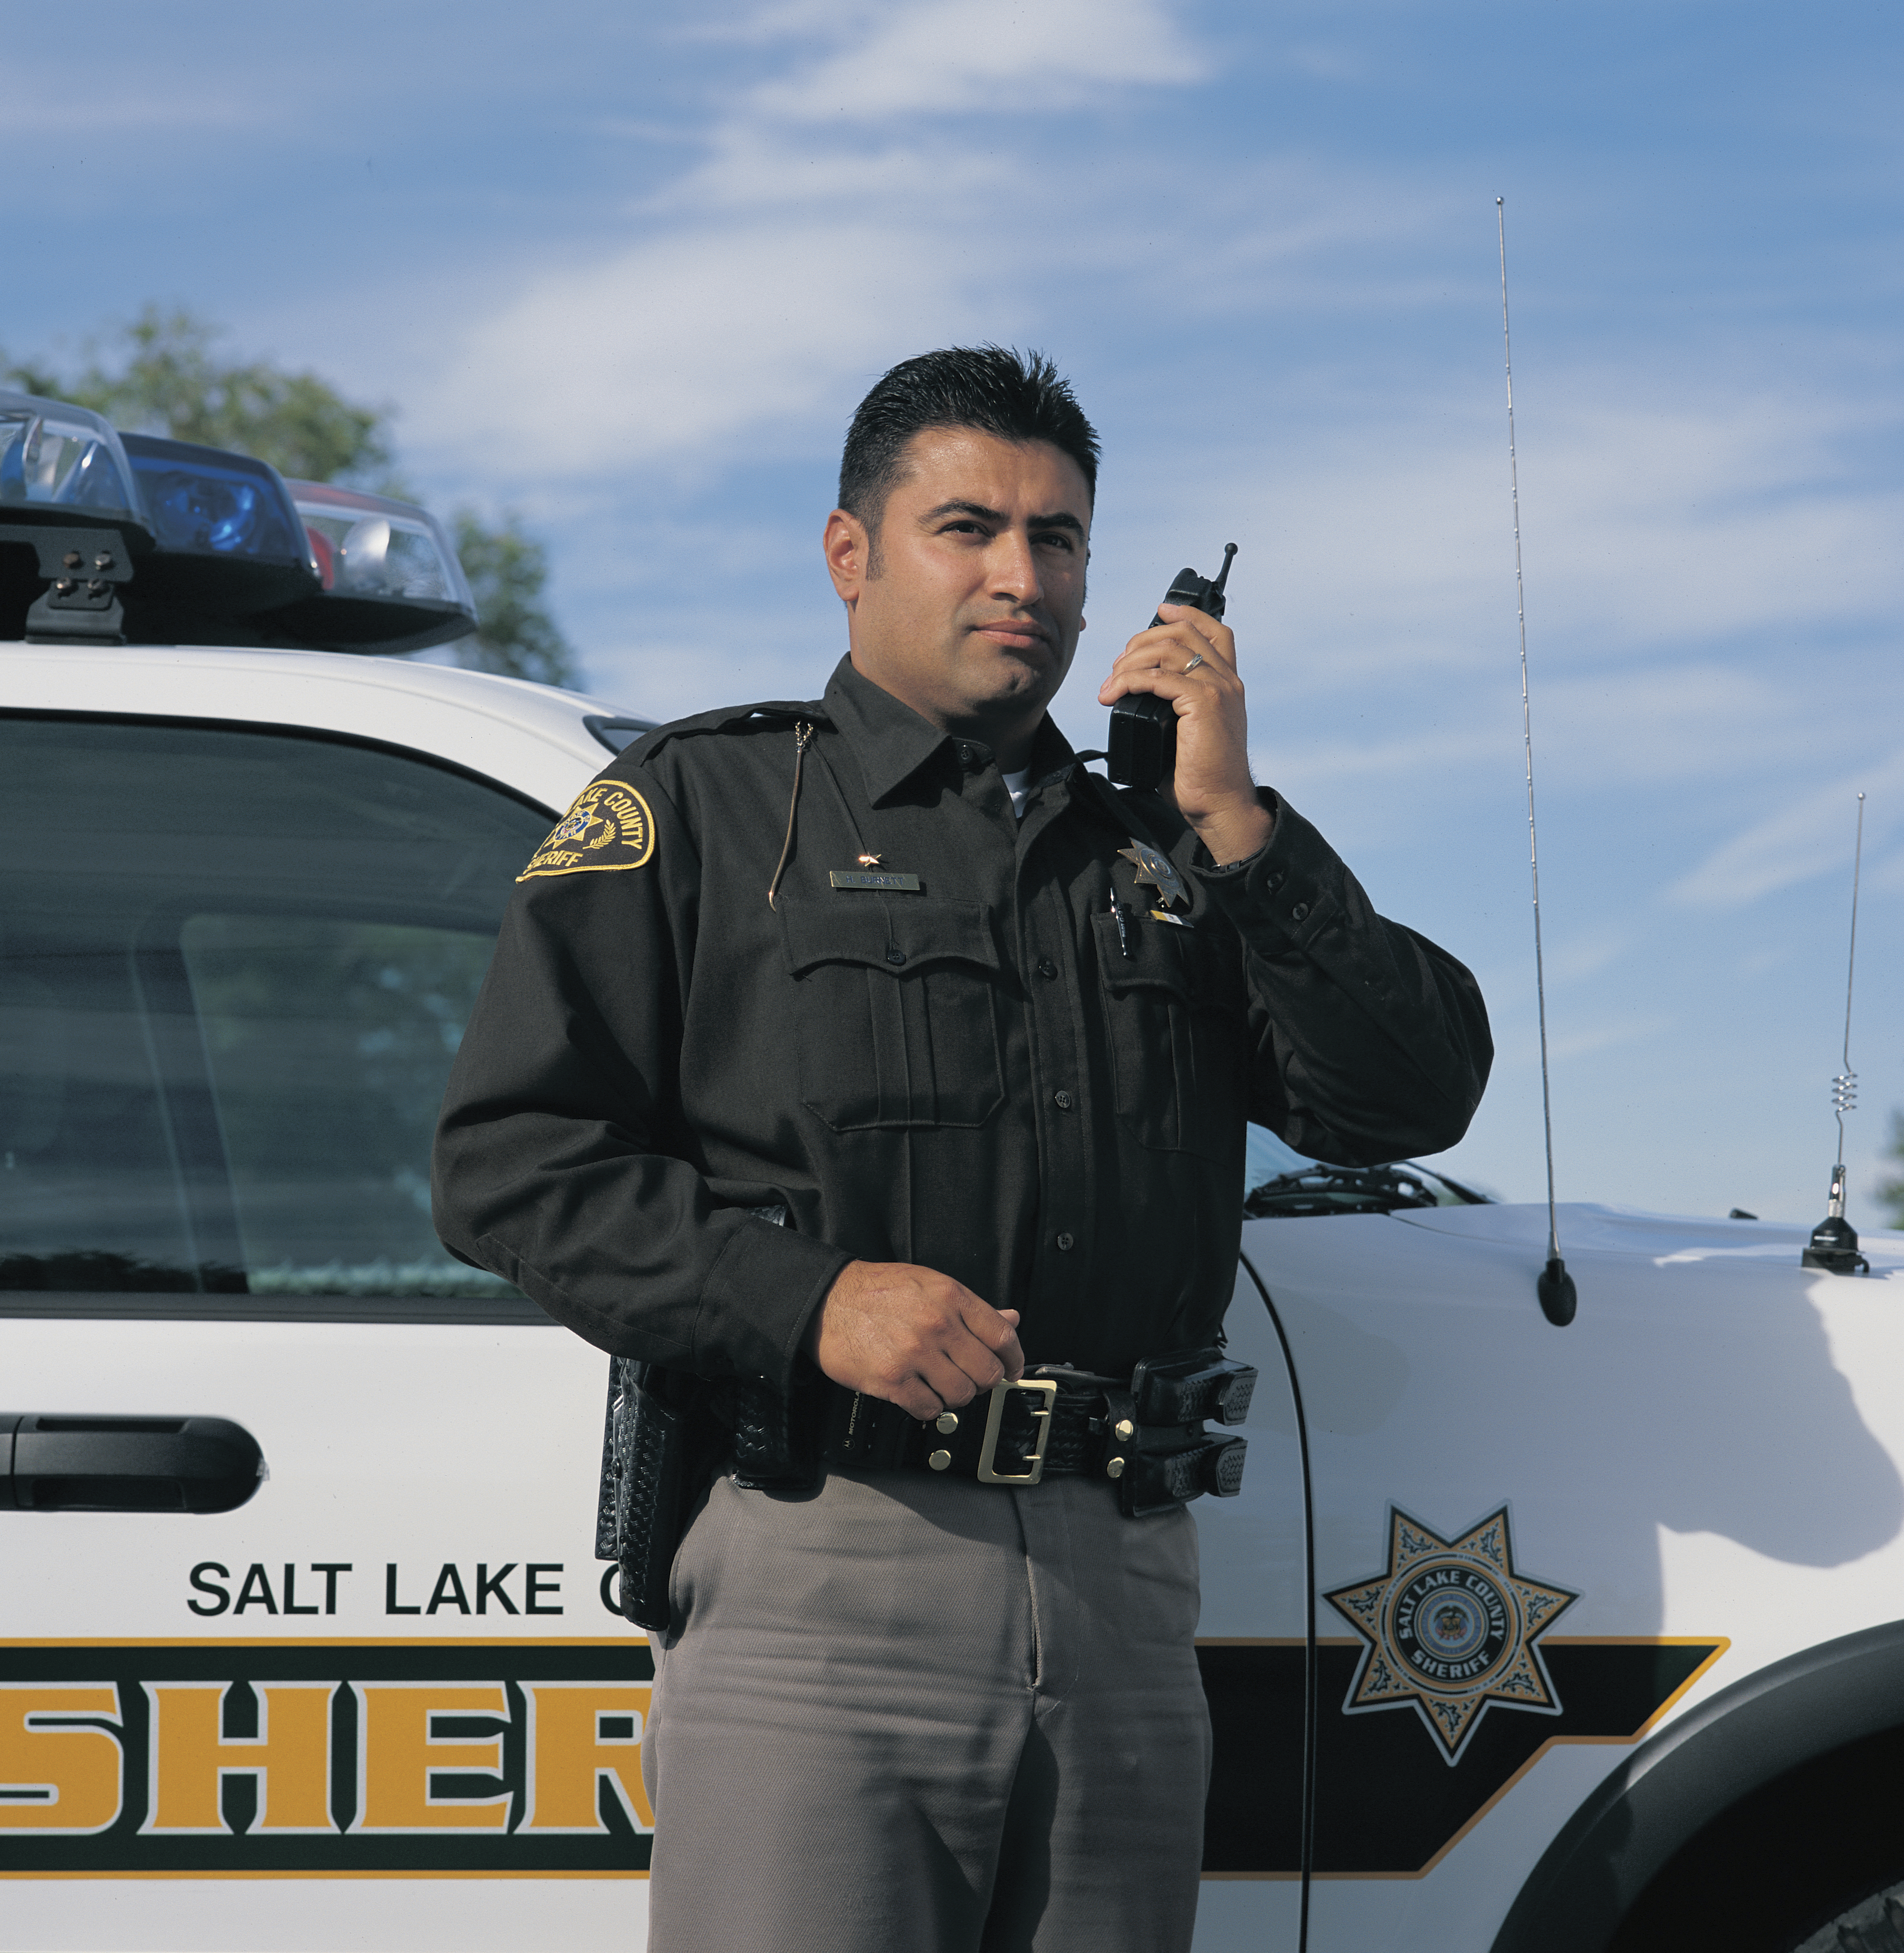 A police officer standing next to his vehicle.